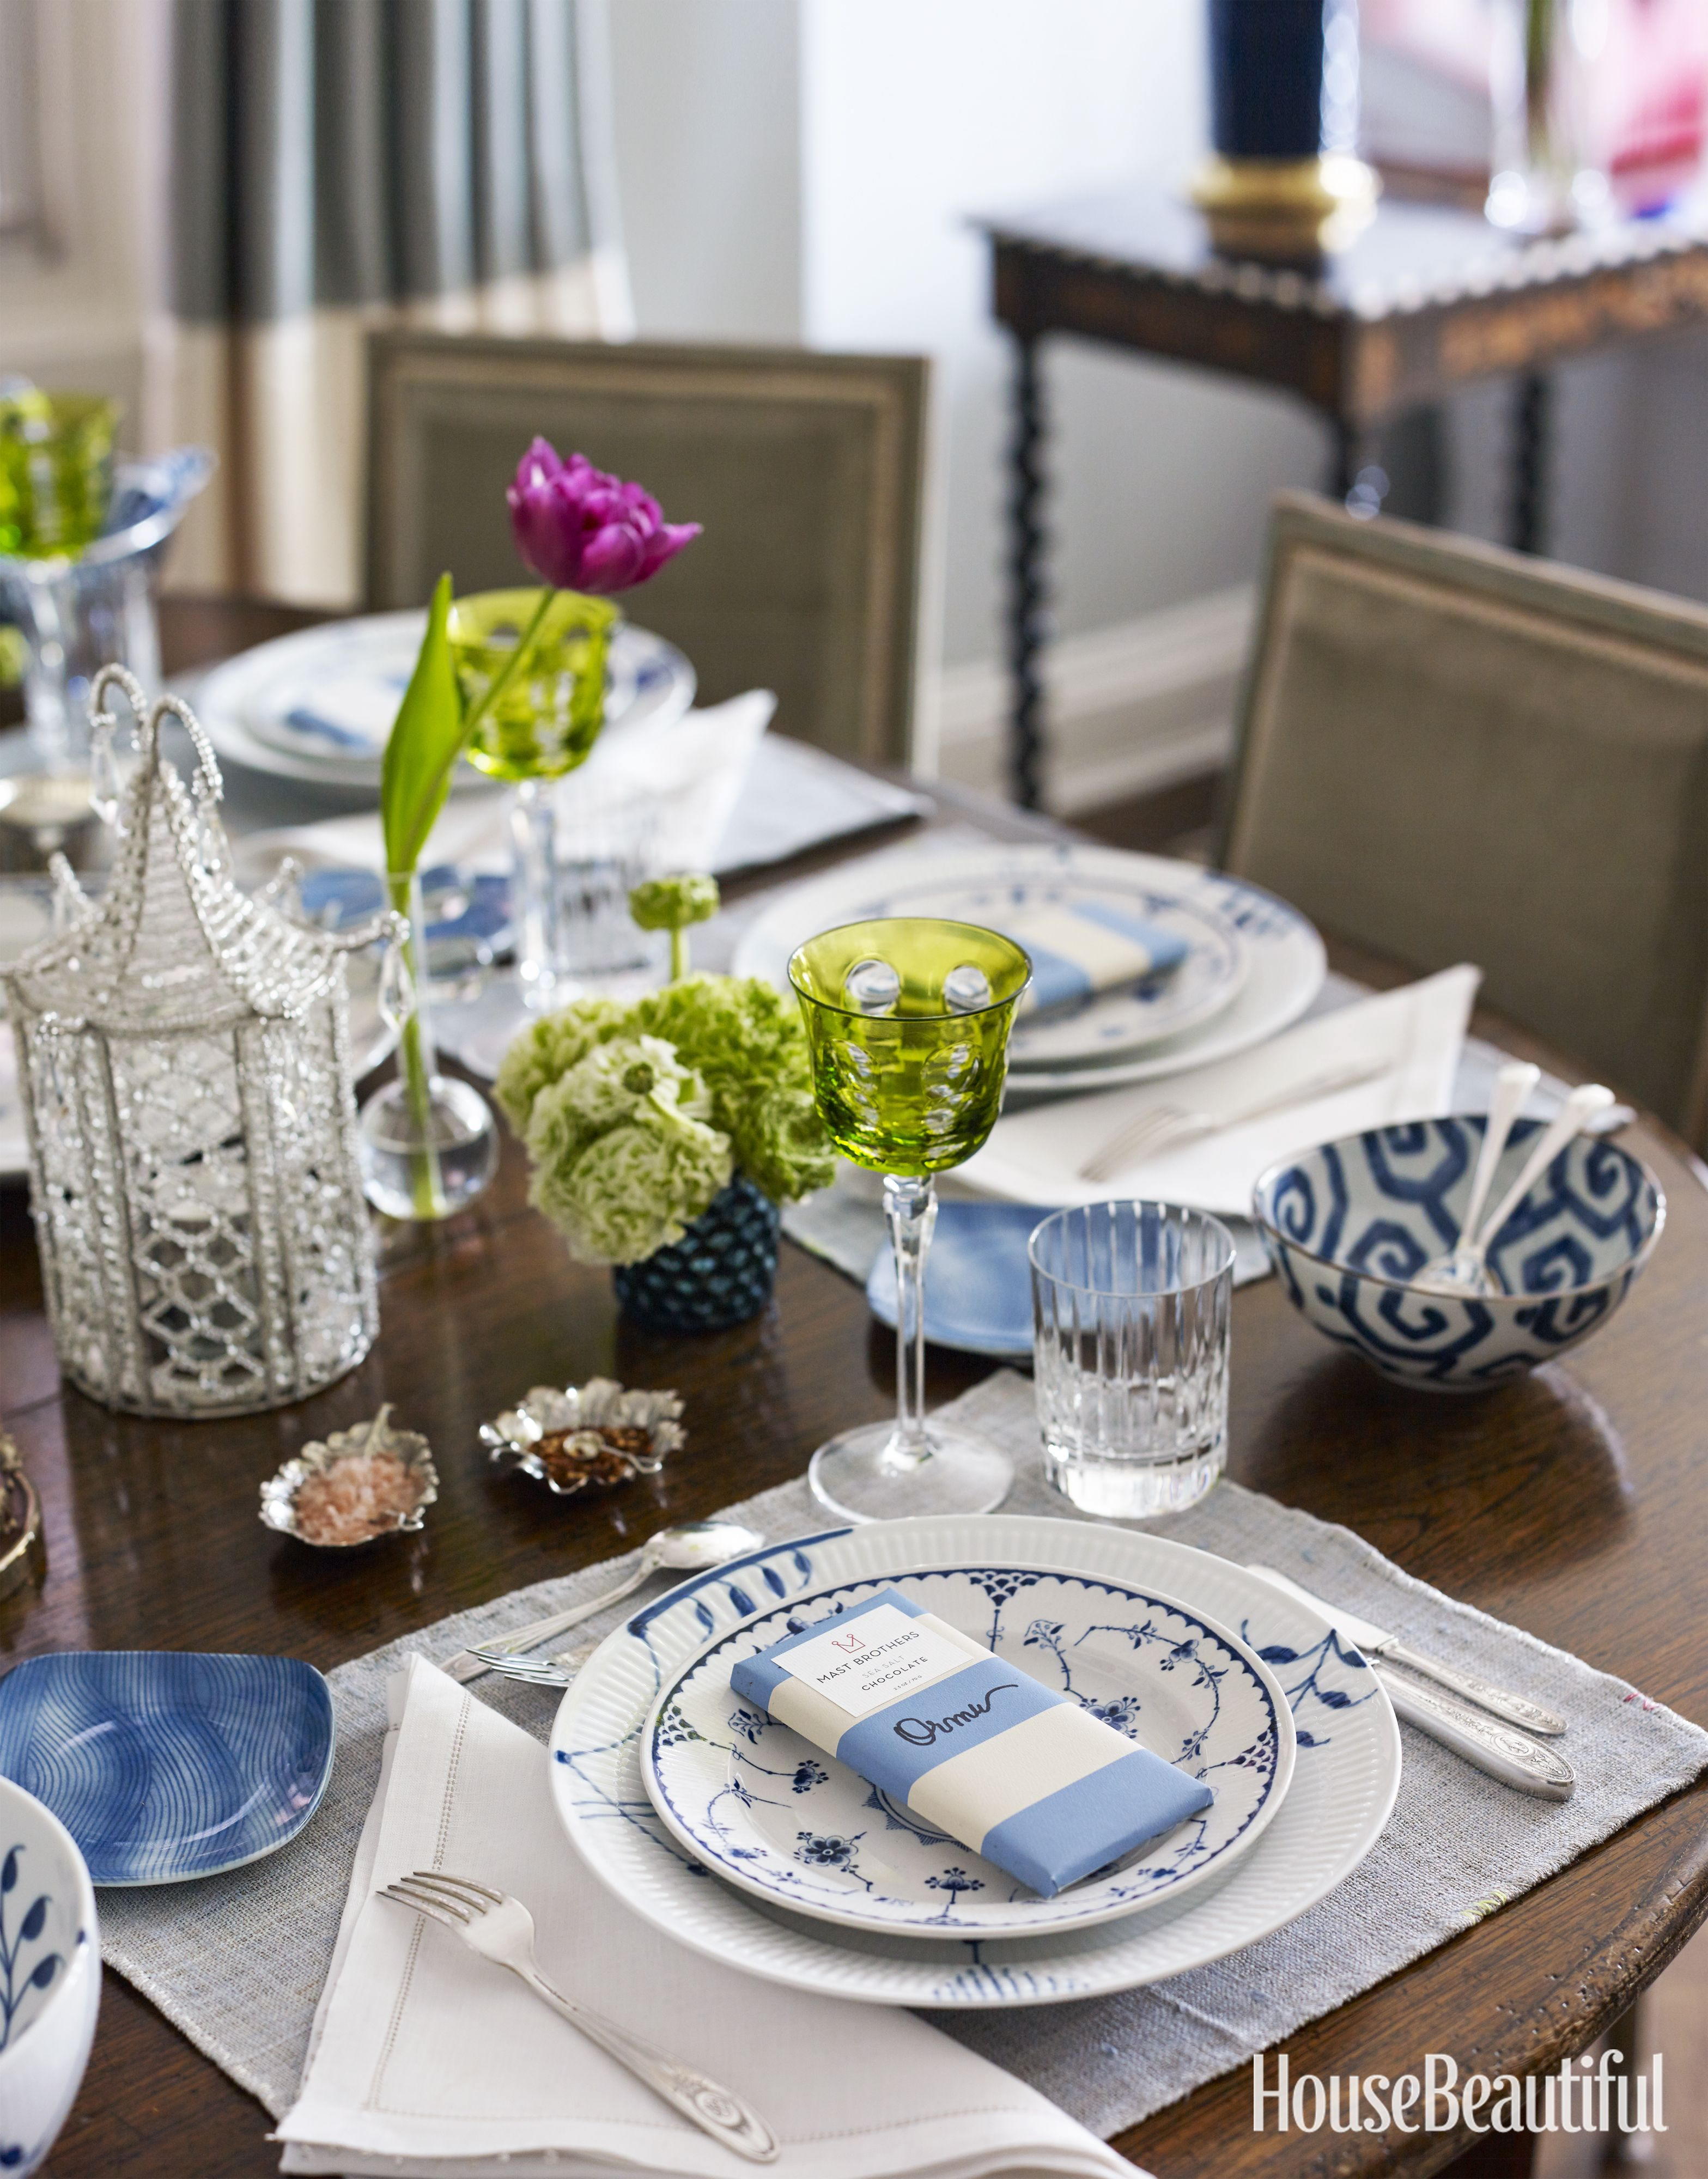 40 Table Setting Decorations, Dining Room Table Setting Ideas